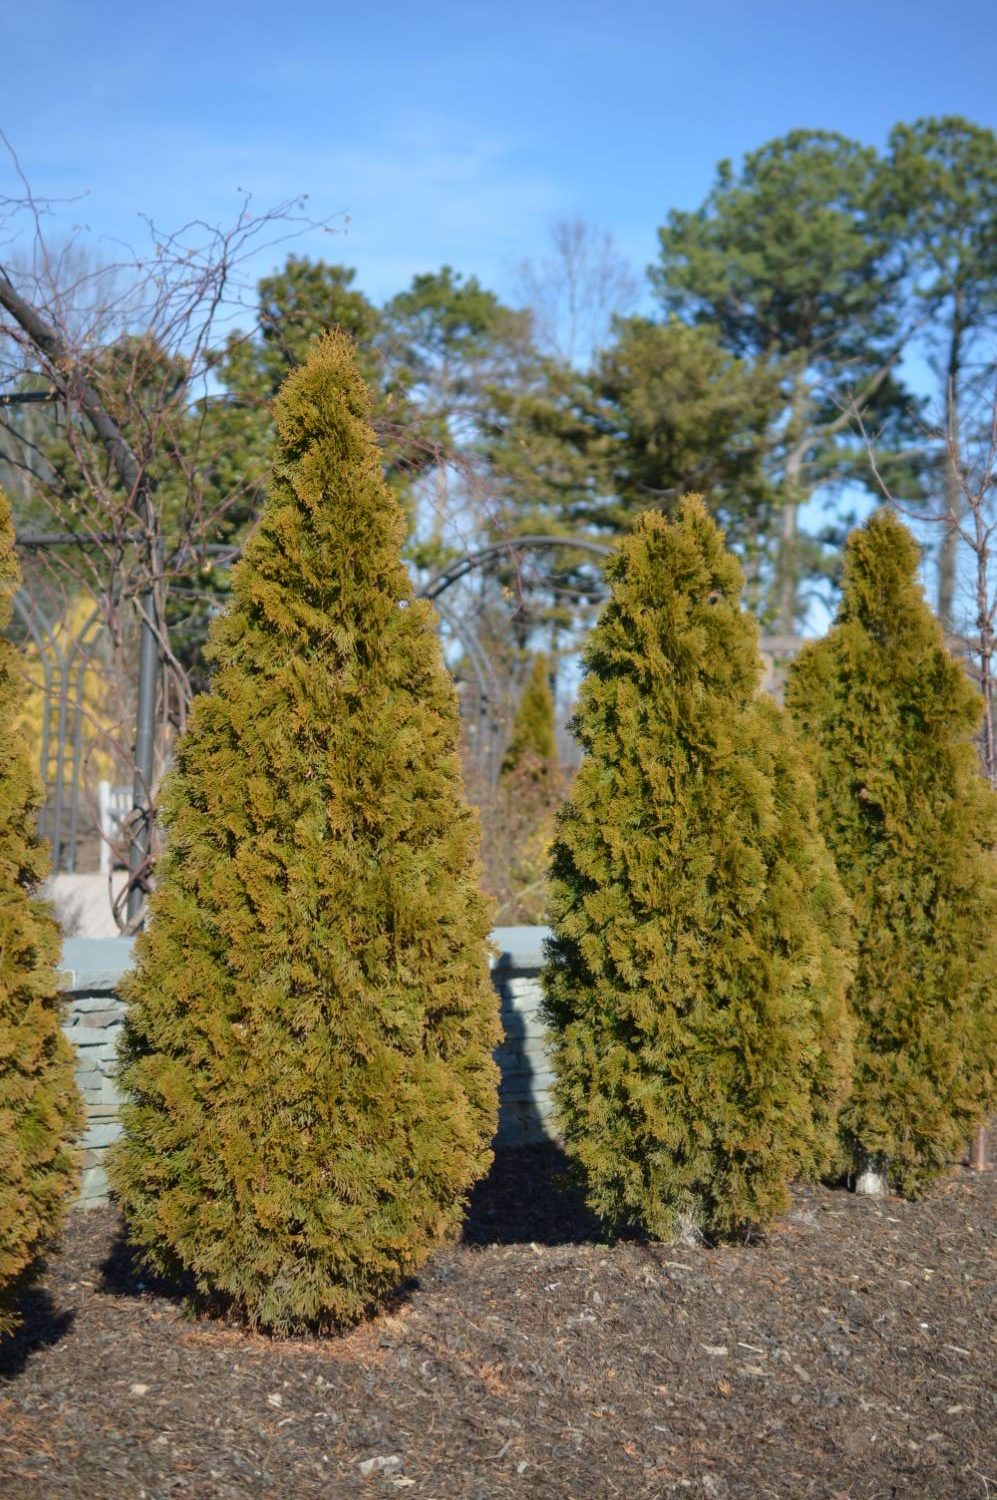 Thuja occidentalis 'Smaragd' – Emerald Green Arborvitae